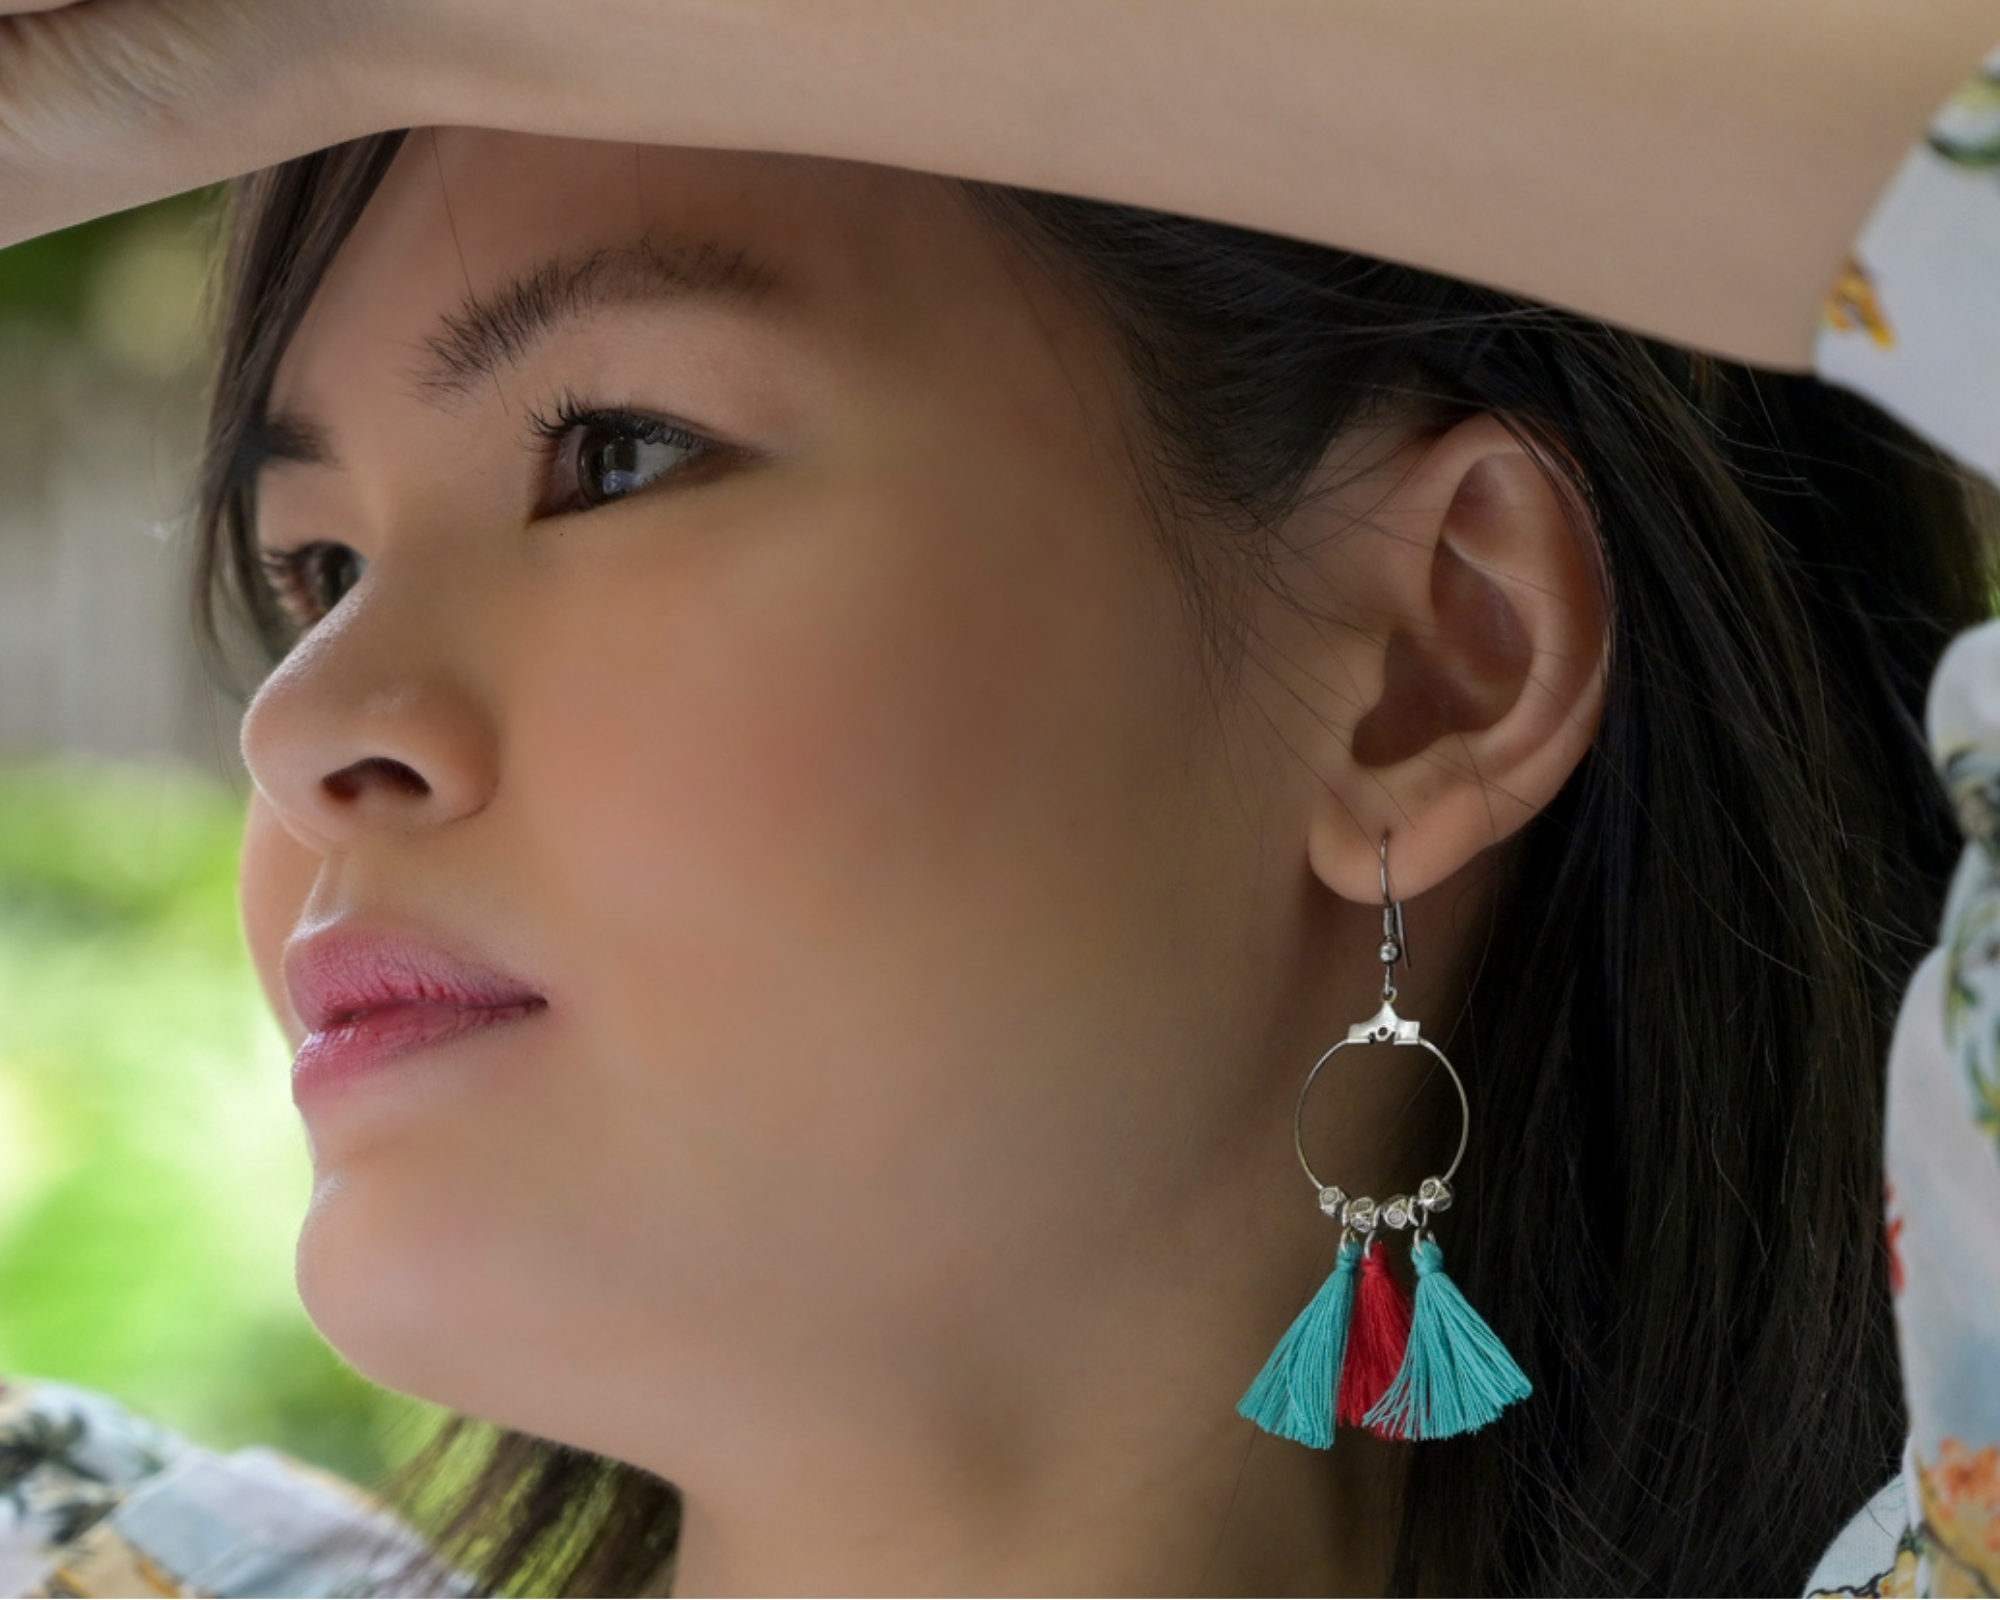 Aztec Red & Teal Ocean Earrings by #daughtersofcambodia